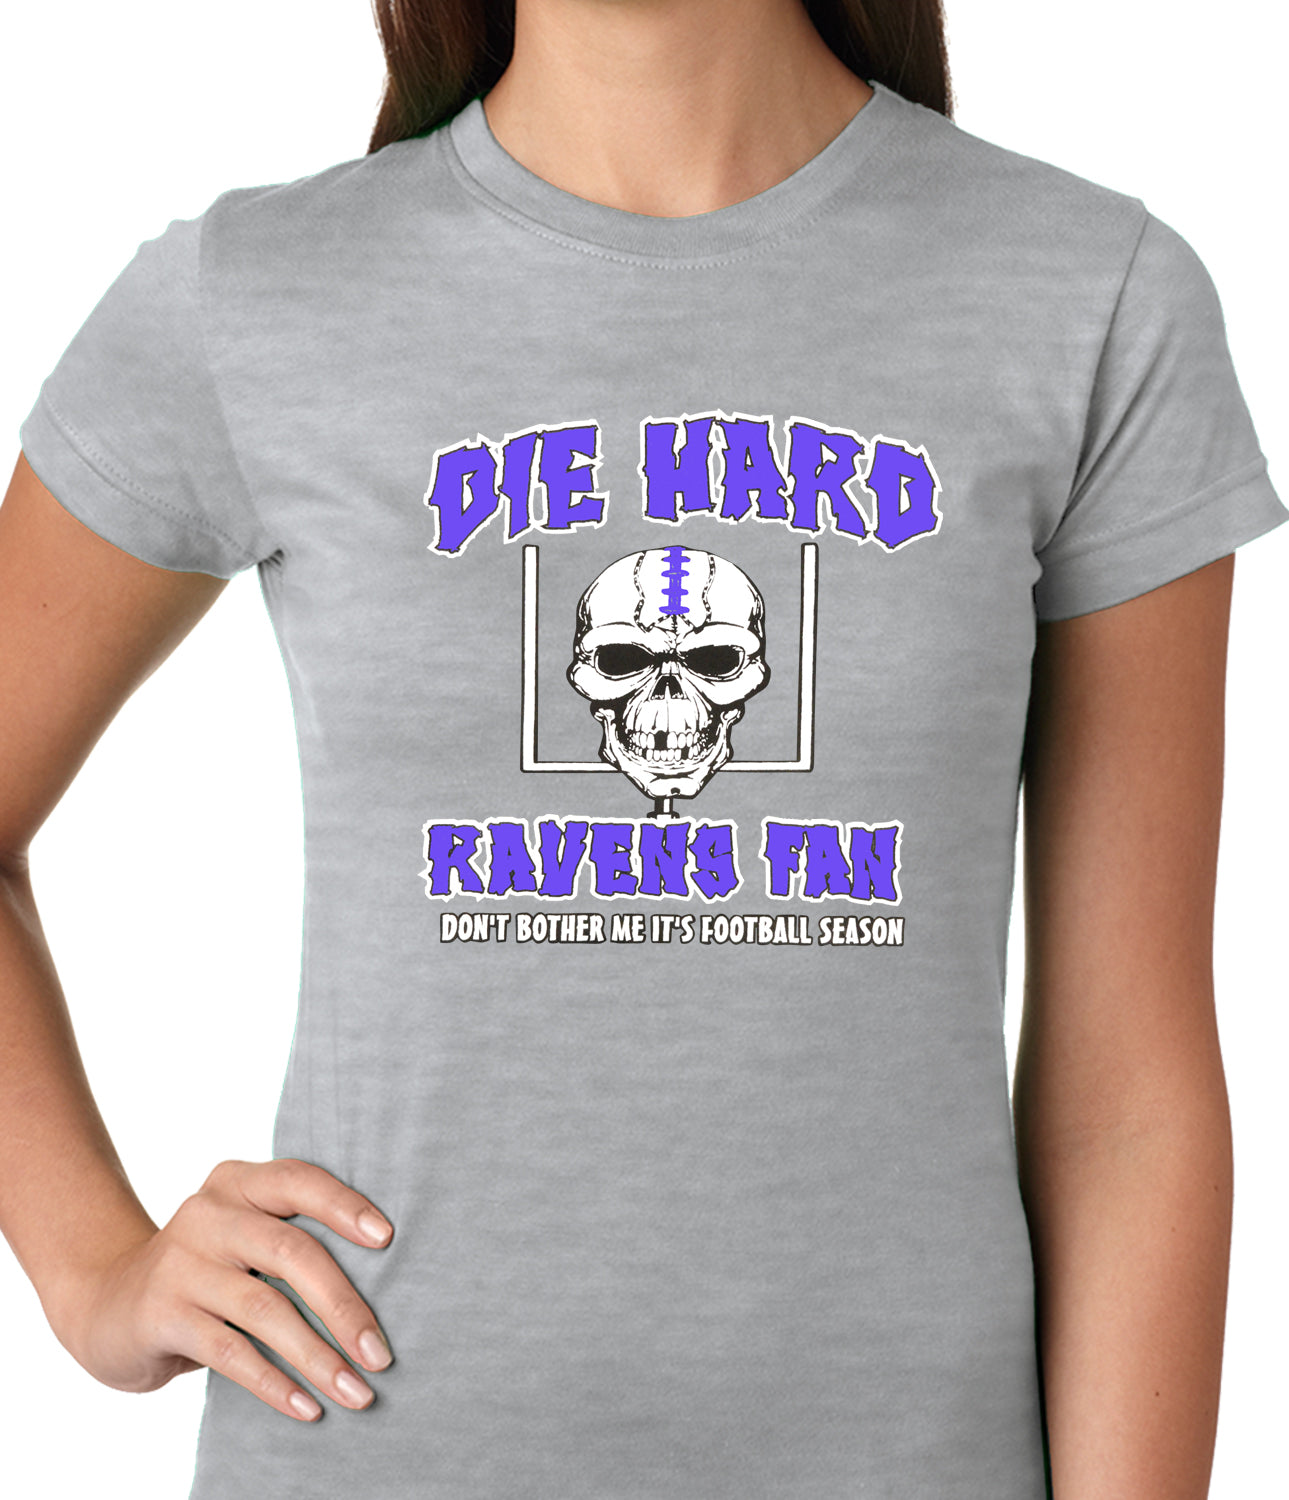 Die Hard Ravens Fan Football Girls T-shirt Heather Grey